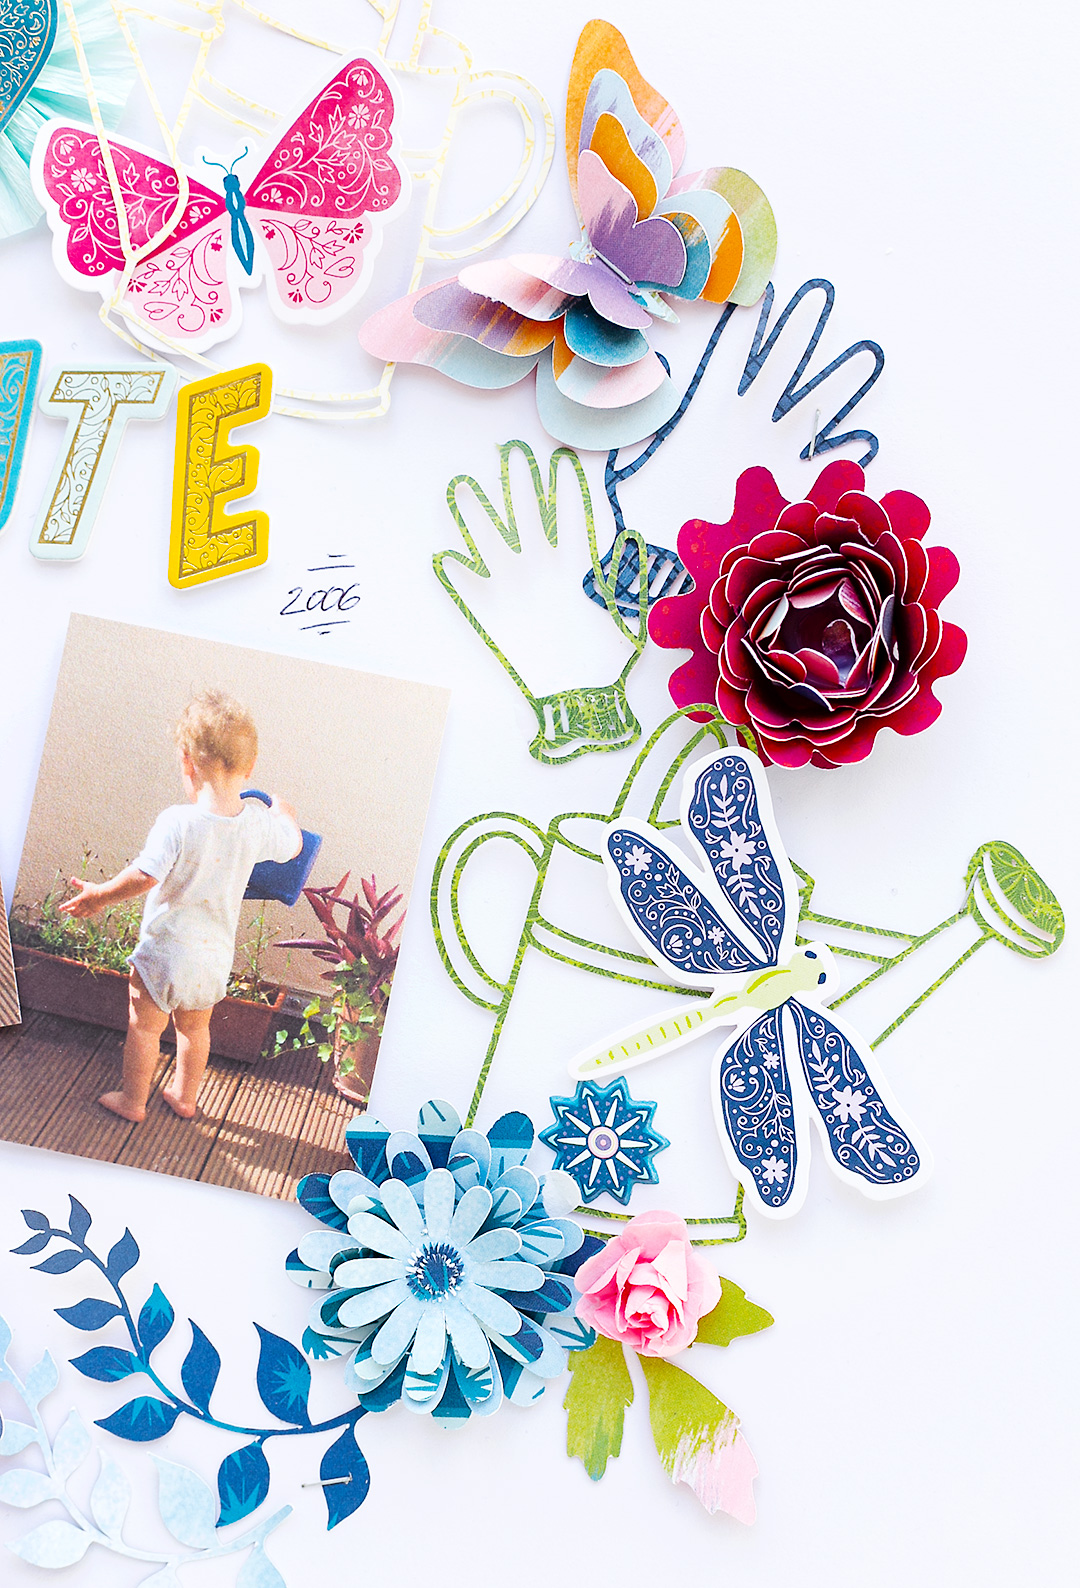 Watering Can, butterfly, leaves and pretty flowers on a scrapbook layout